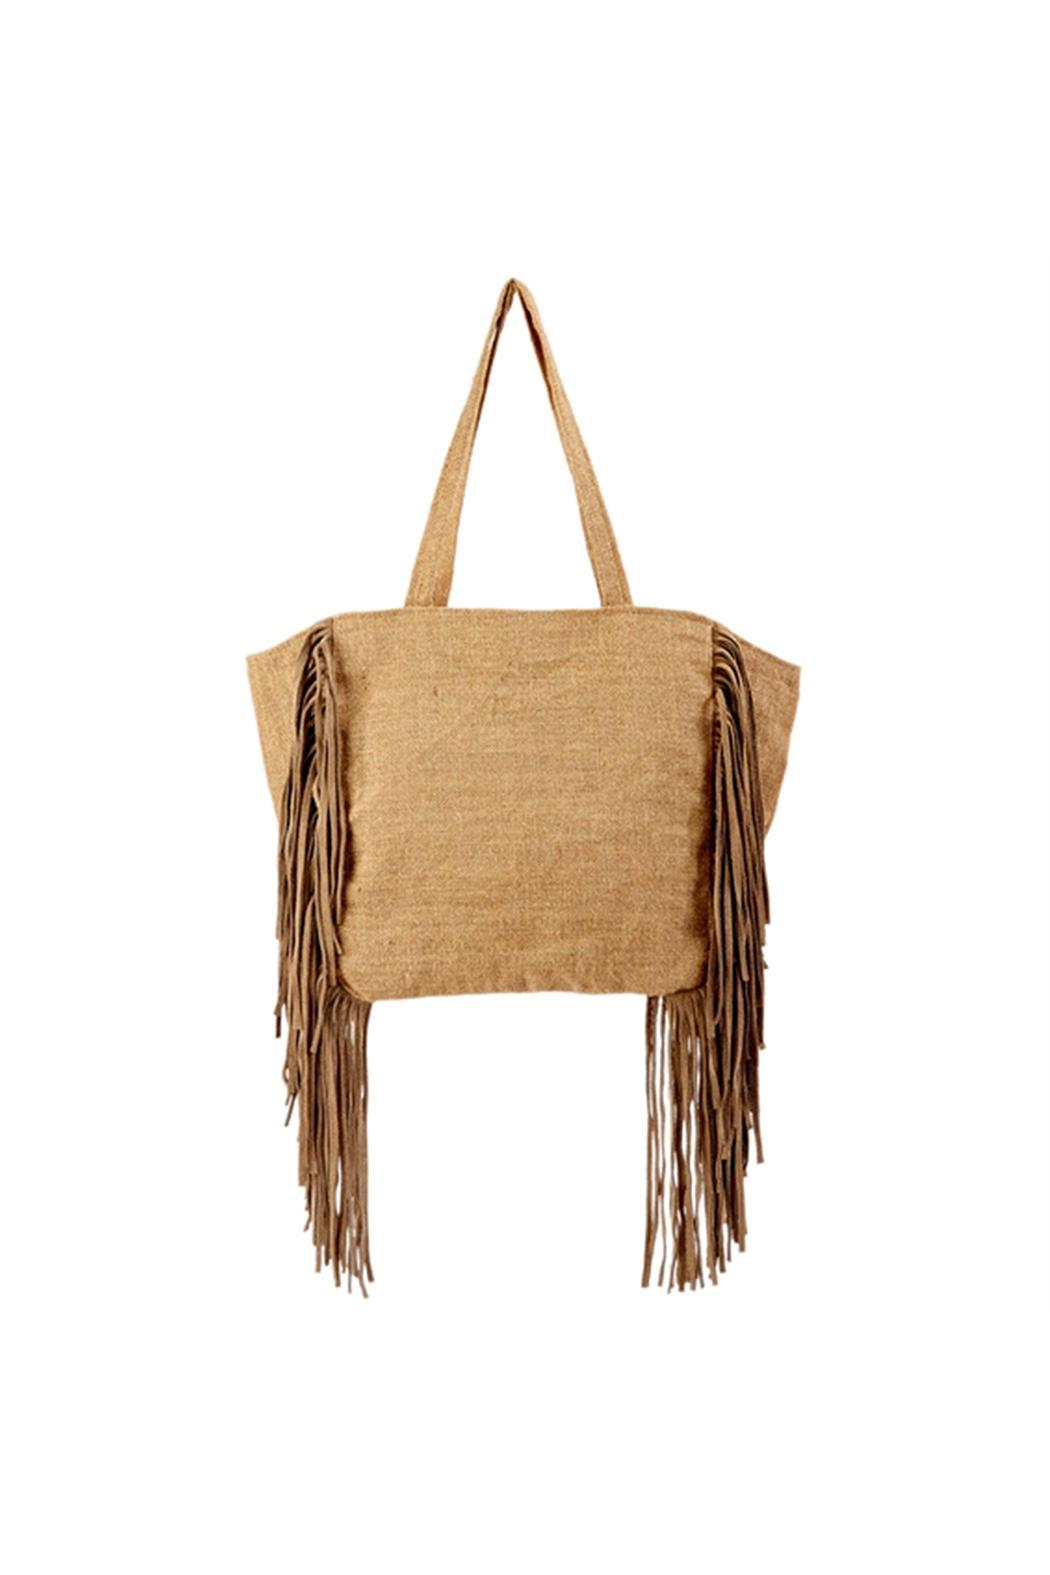 2 Chic Luxe By Muche Et Muchette Leather Fringe Tote Back Cropped Image